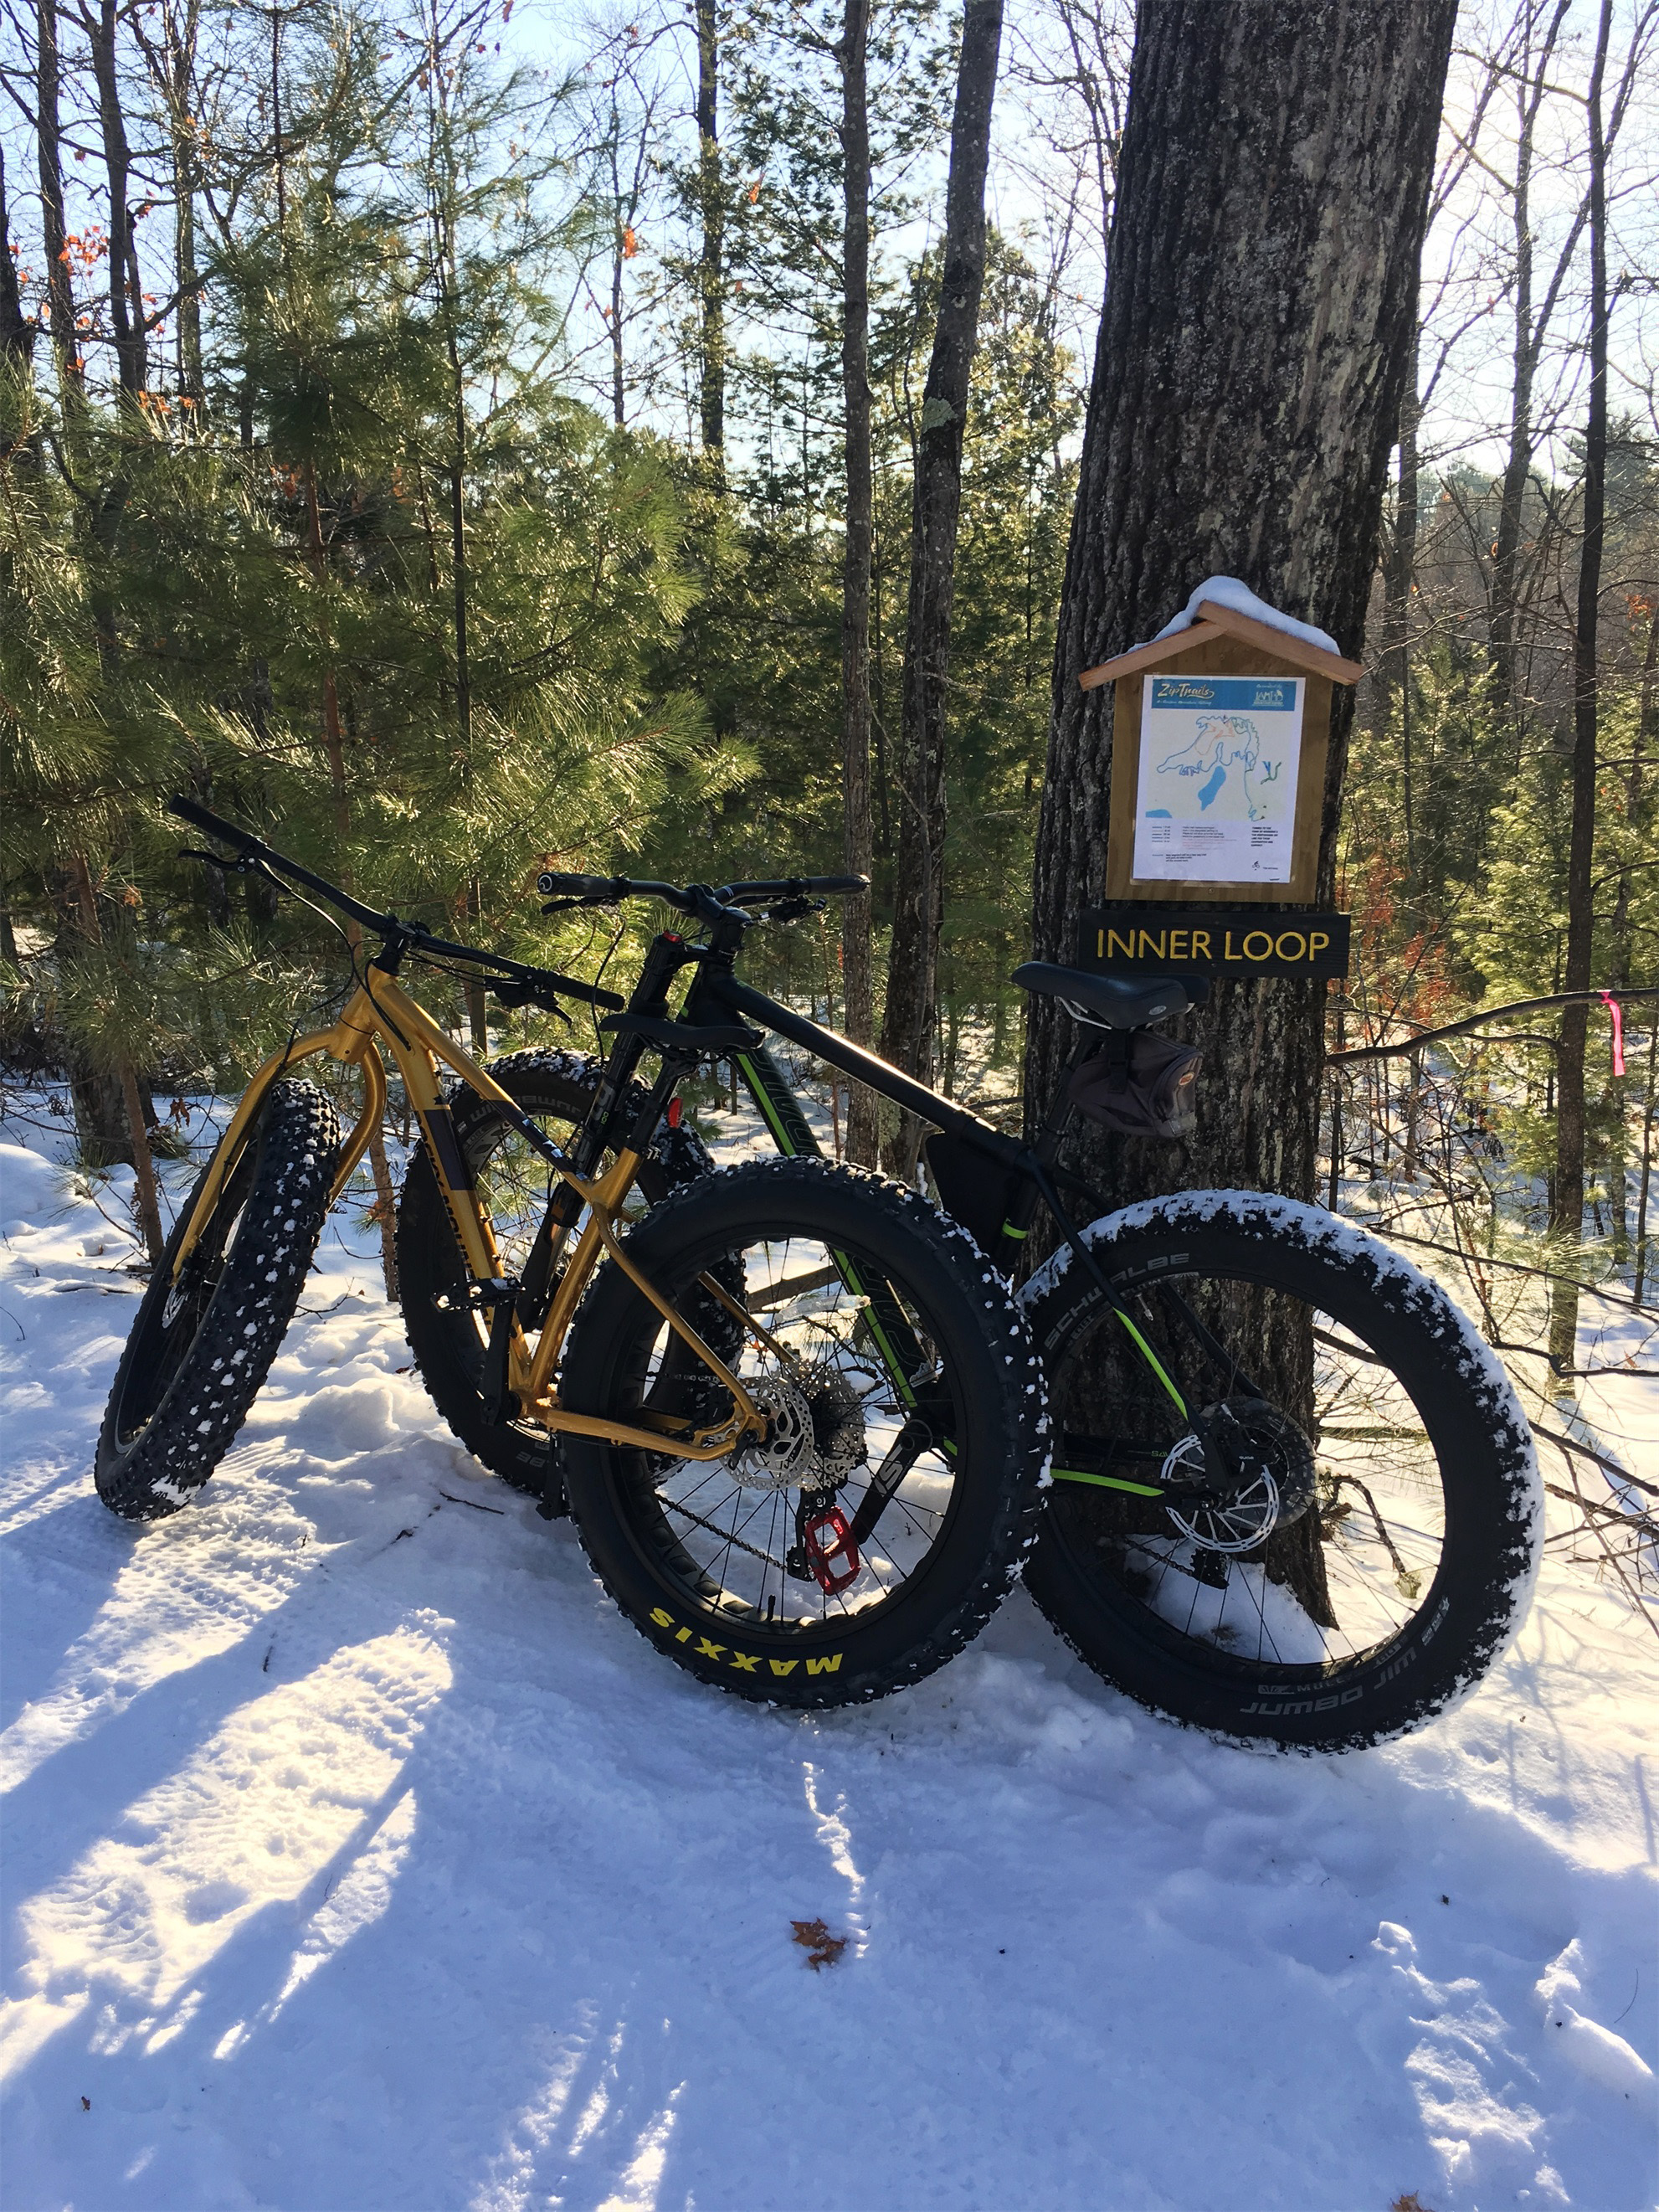 Winter biking at Northwoods Zip Line Trails in Minocqua. Kim Johnson photo